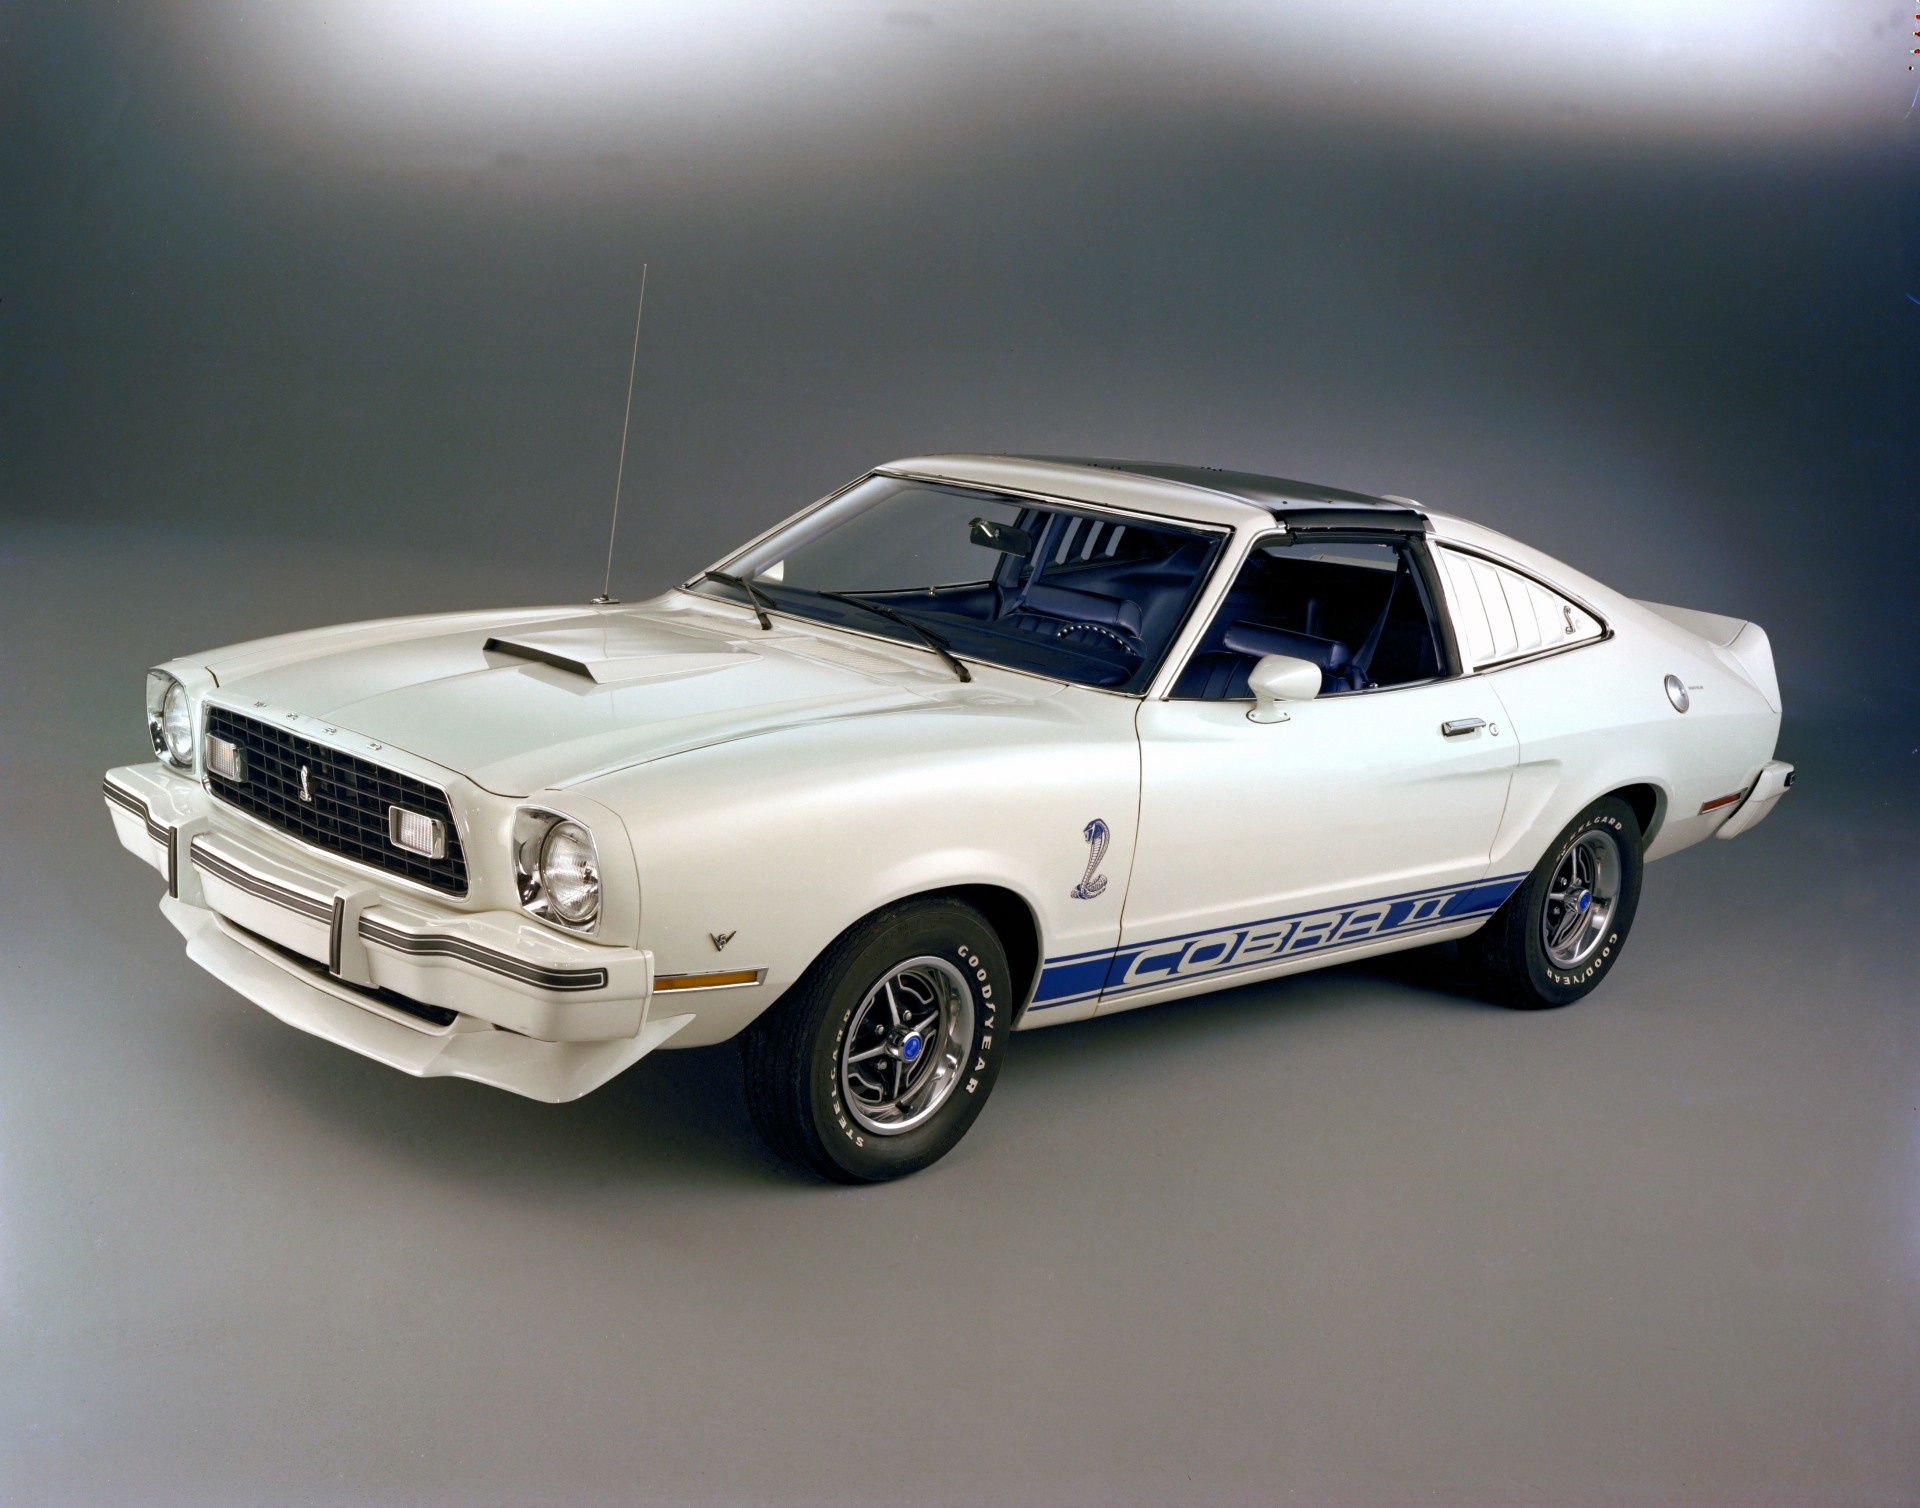 1976 ford mustang ii pictures history value research news. Black Bedroom Furniture Sets. Home Design Ideas